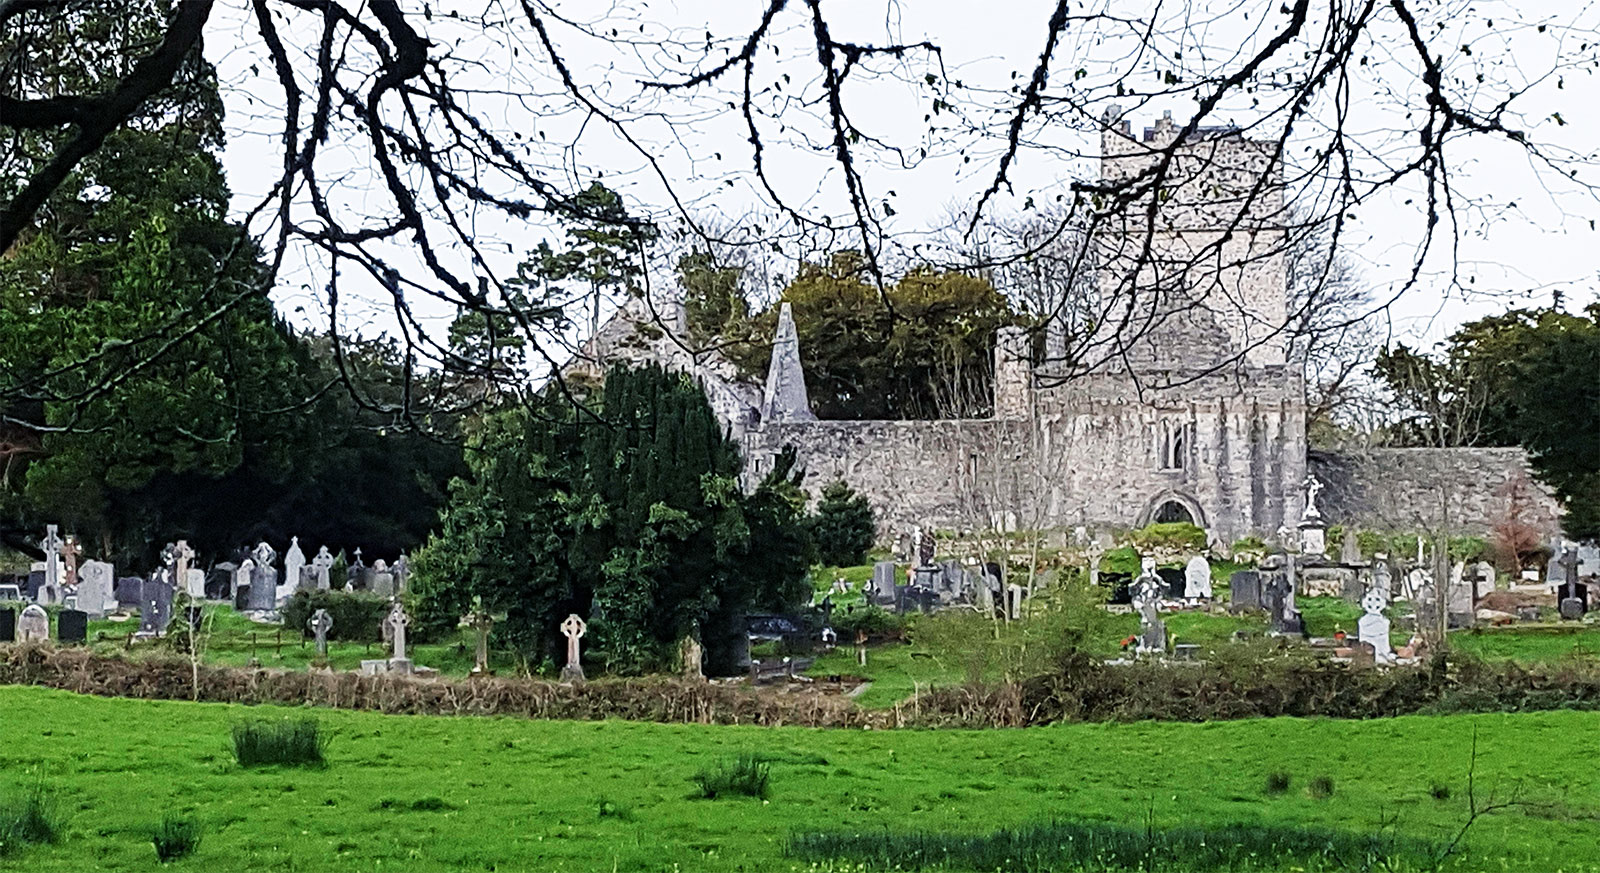 Muckross Abbey, Killarney, Co. Kerry